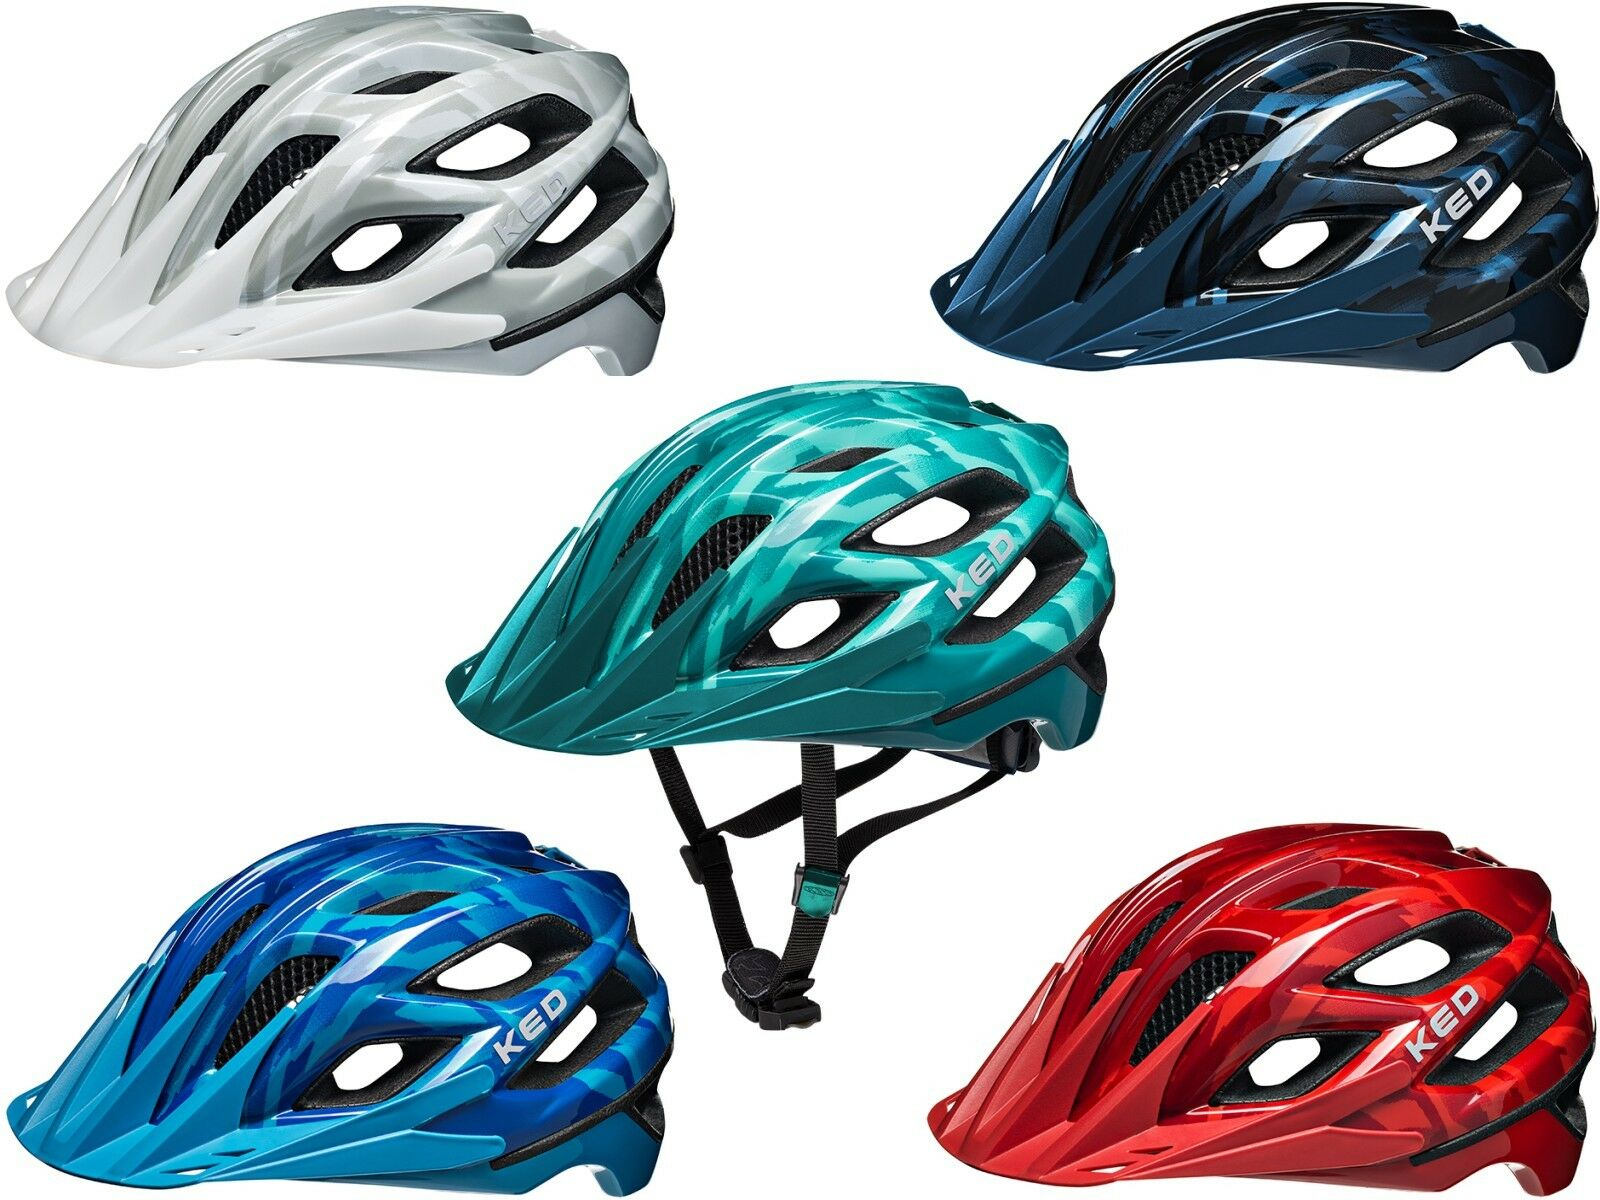 KED Helmet Companion Bicycle Helmet Youth Adult Various Colours-NEW MOD. 2019